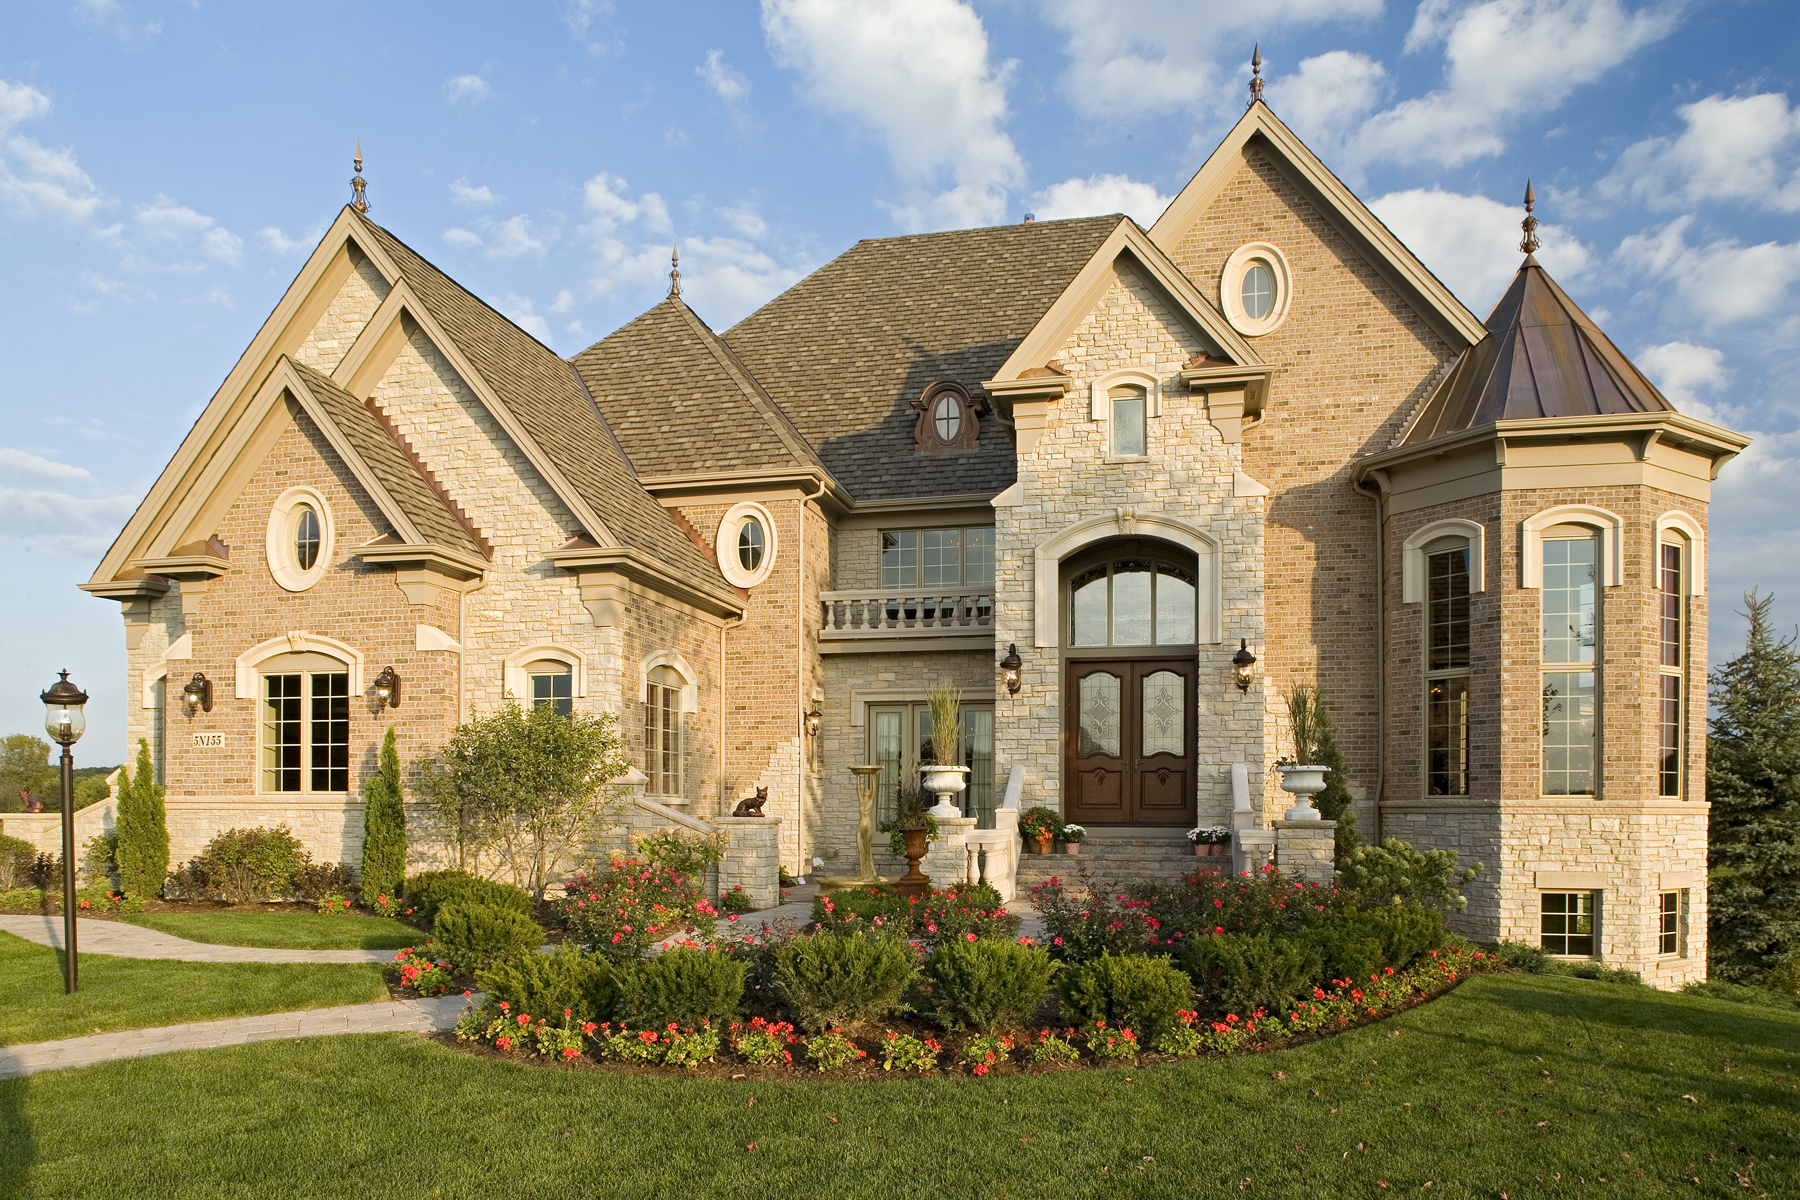 Prairie Lakes Custom Home by Southampton in St. Charles IL 60175.